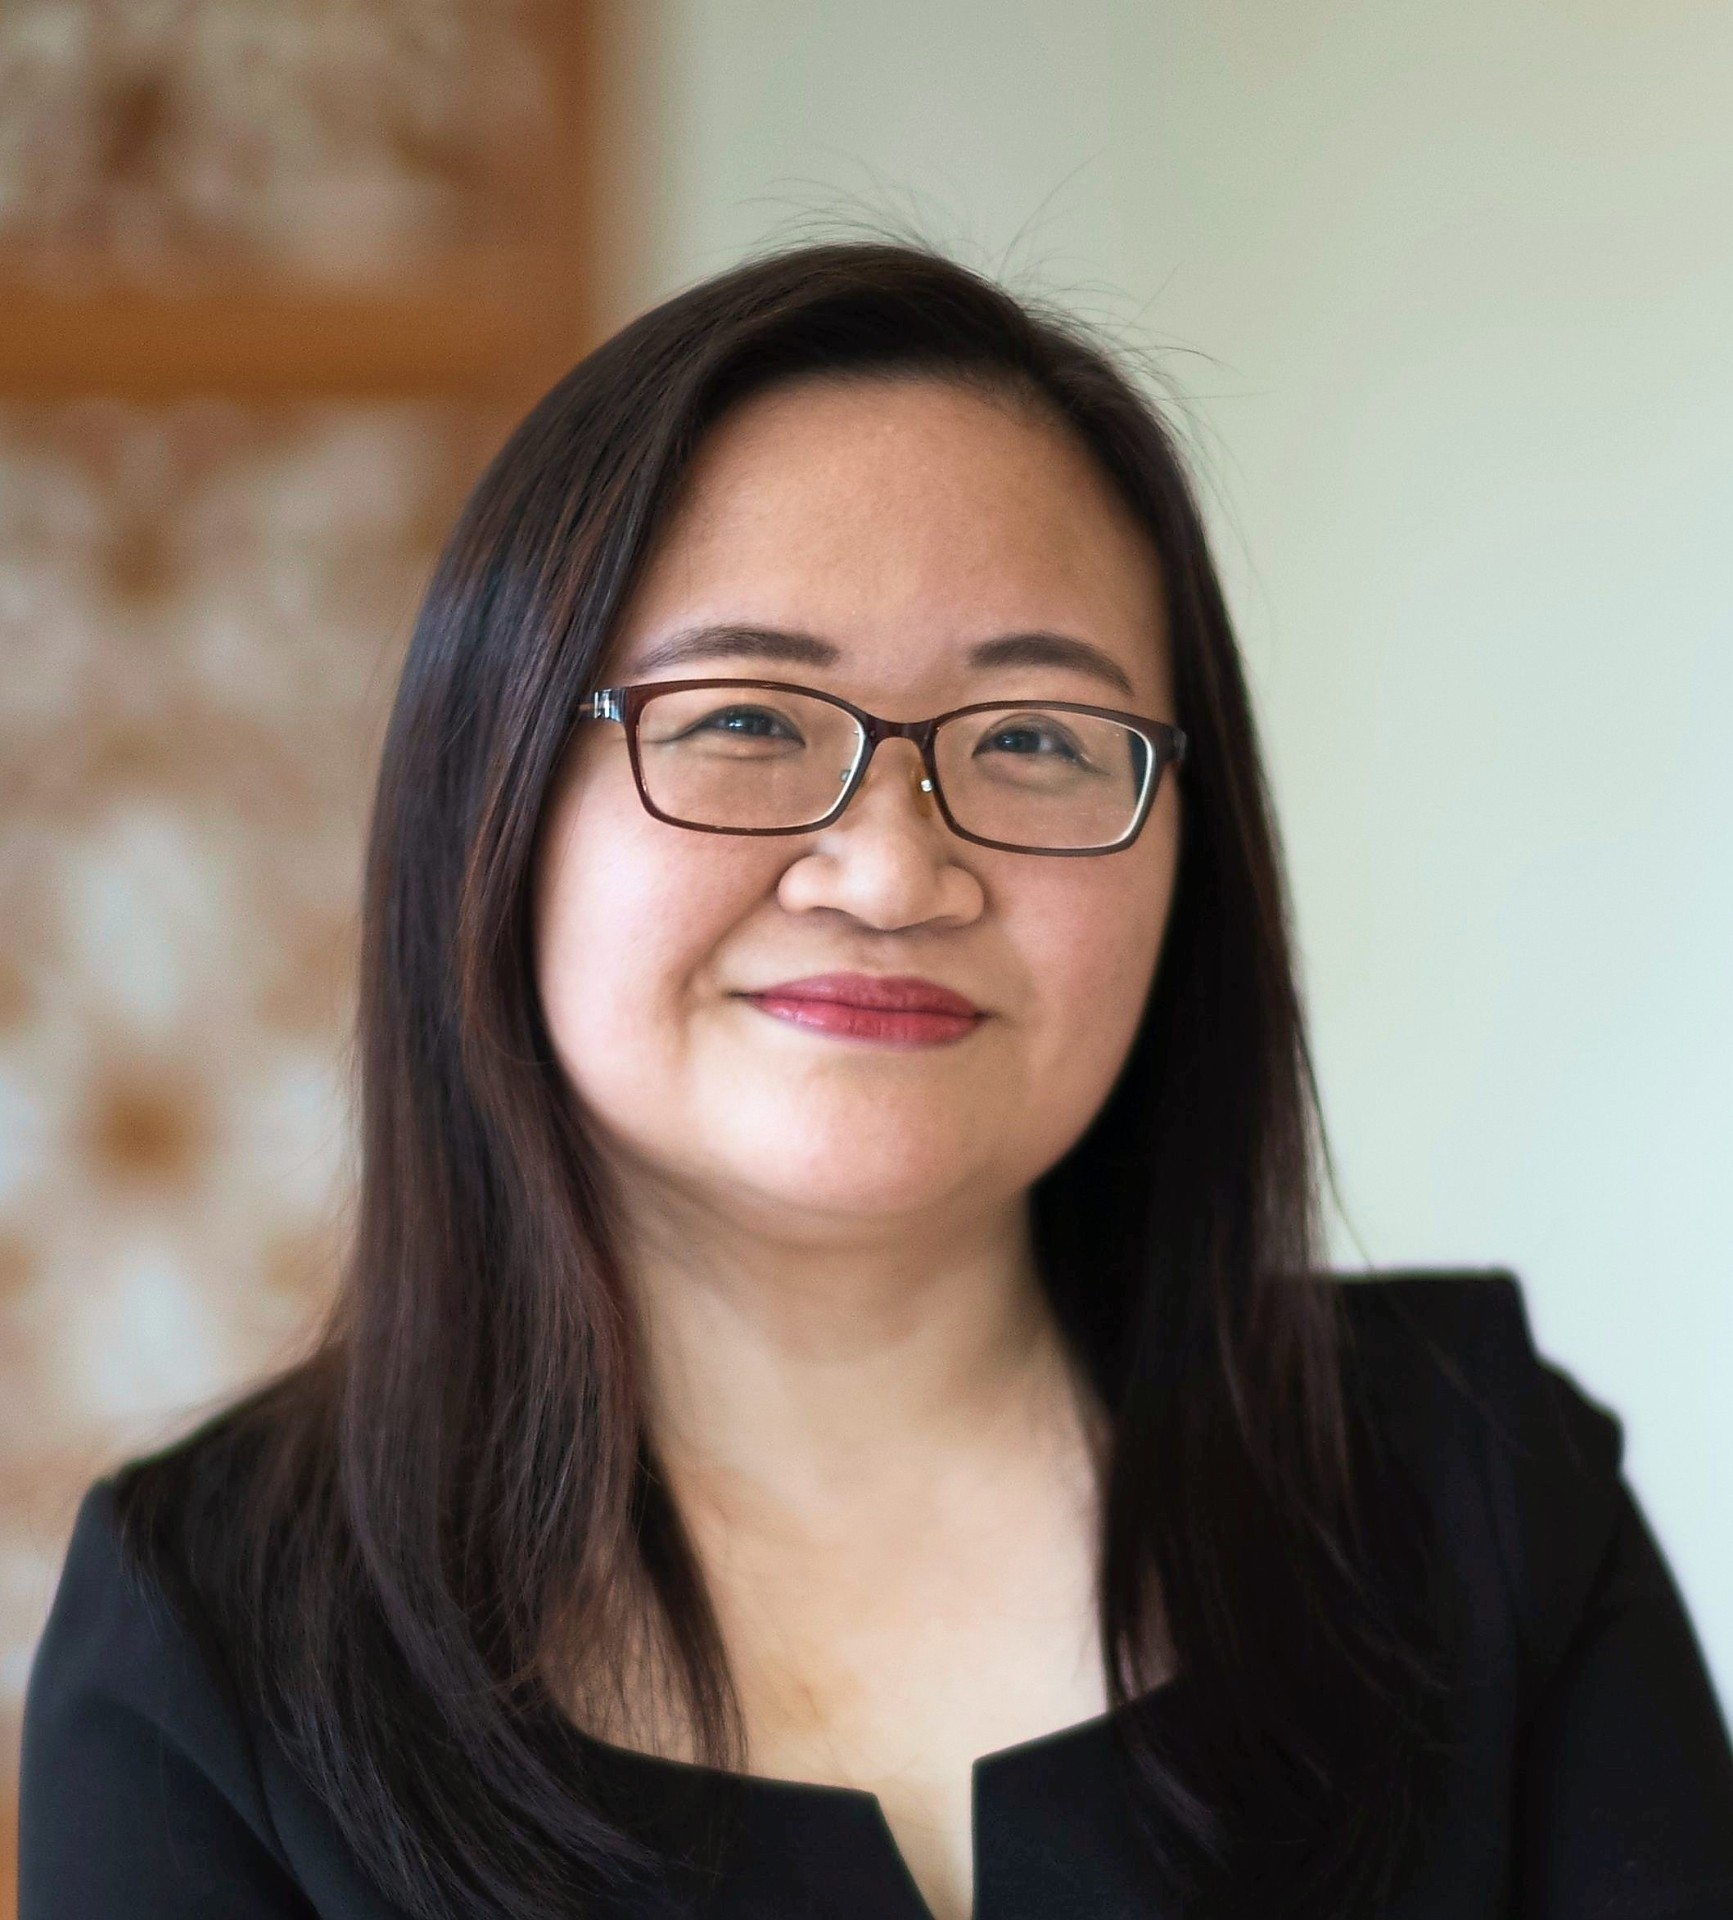 Sharon Yong is a Tax Partner in Ernst & Young Tax Consultants Sdn Bhd